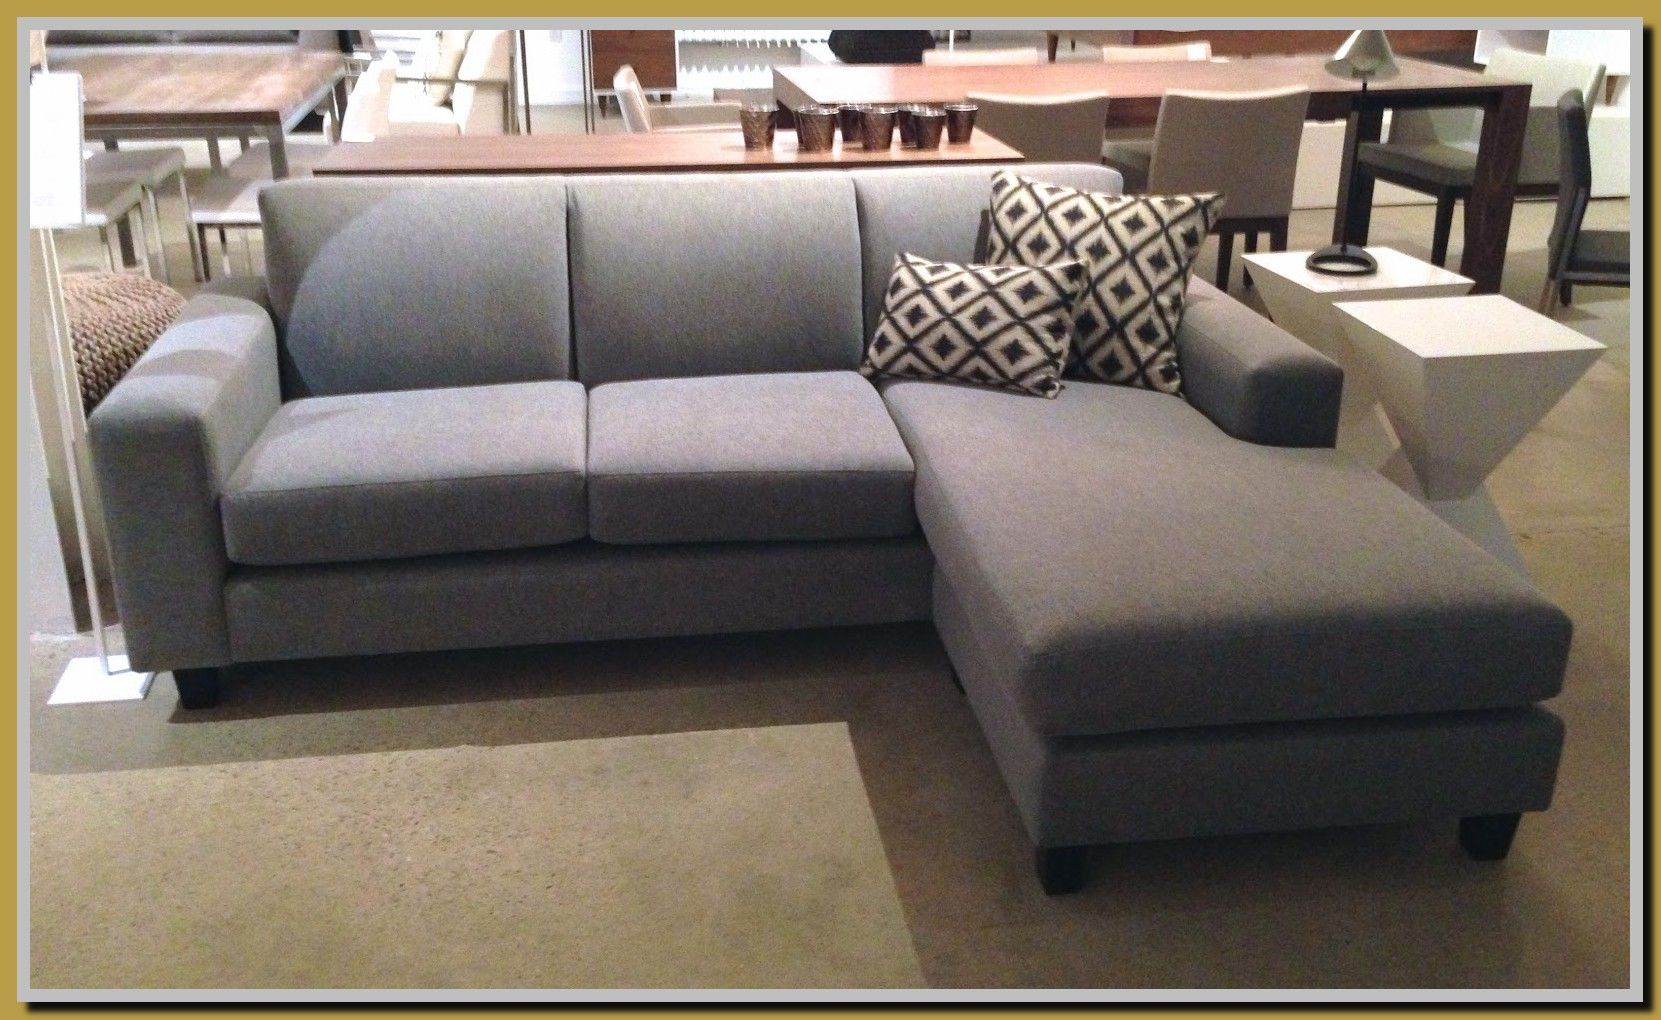 52 Reference Of Sectional Sofa Bed Toronto In 2020 Sofa Store Sofa Sectional Sofa Couch